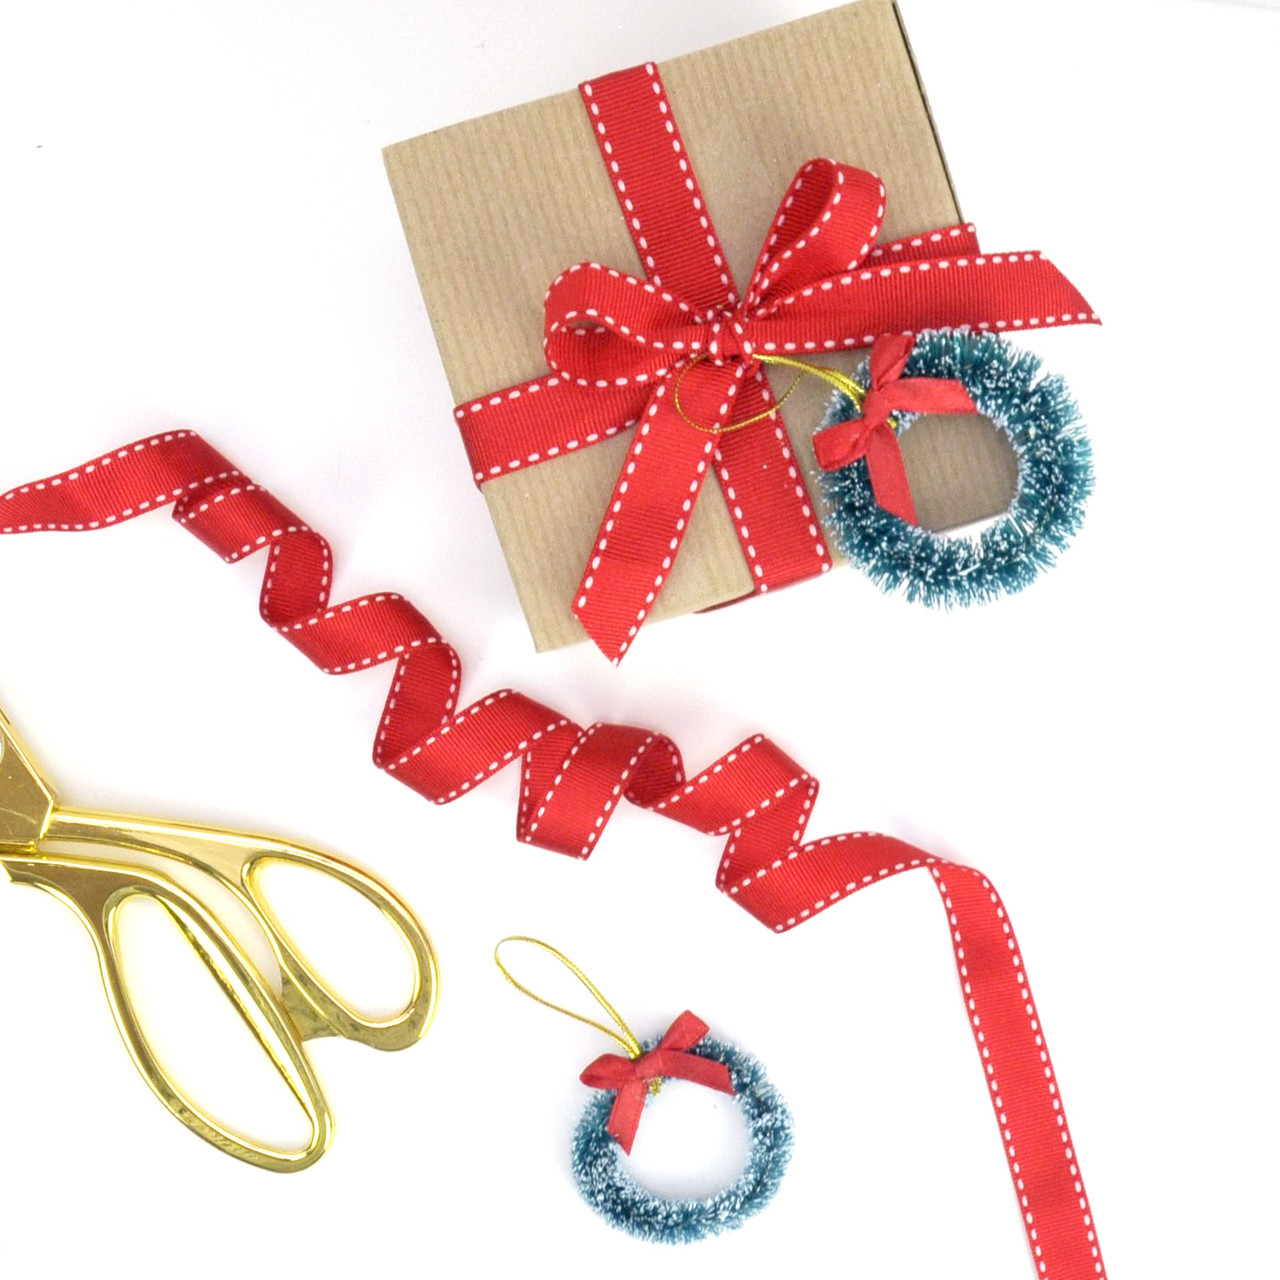 Christmas Wreath Gift Wrap Accessory For Presents Craft Projects